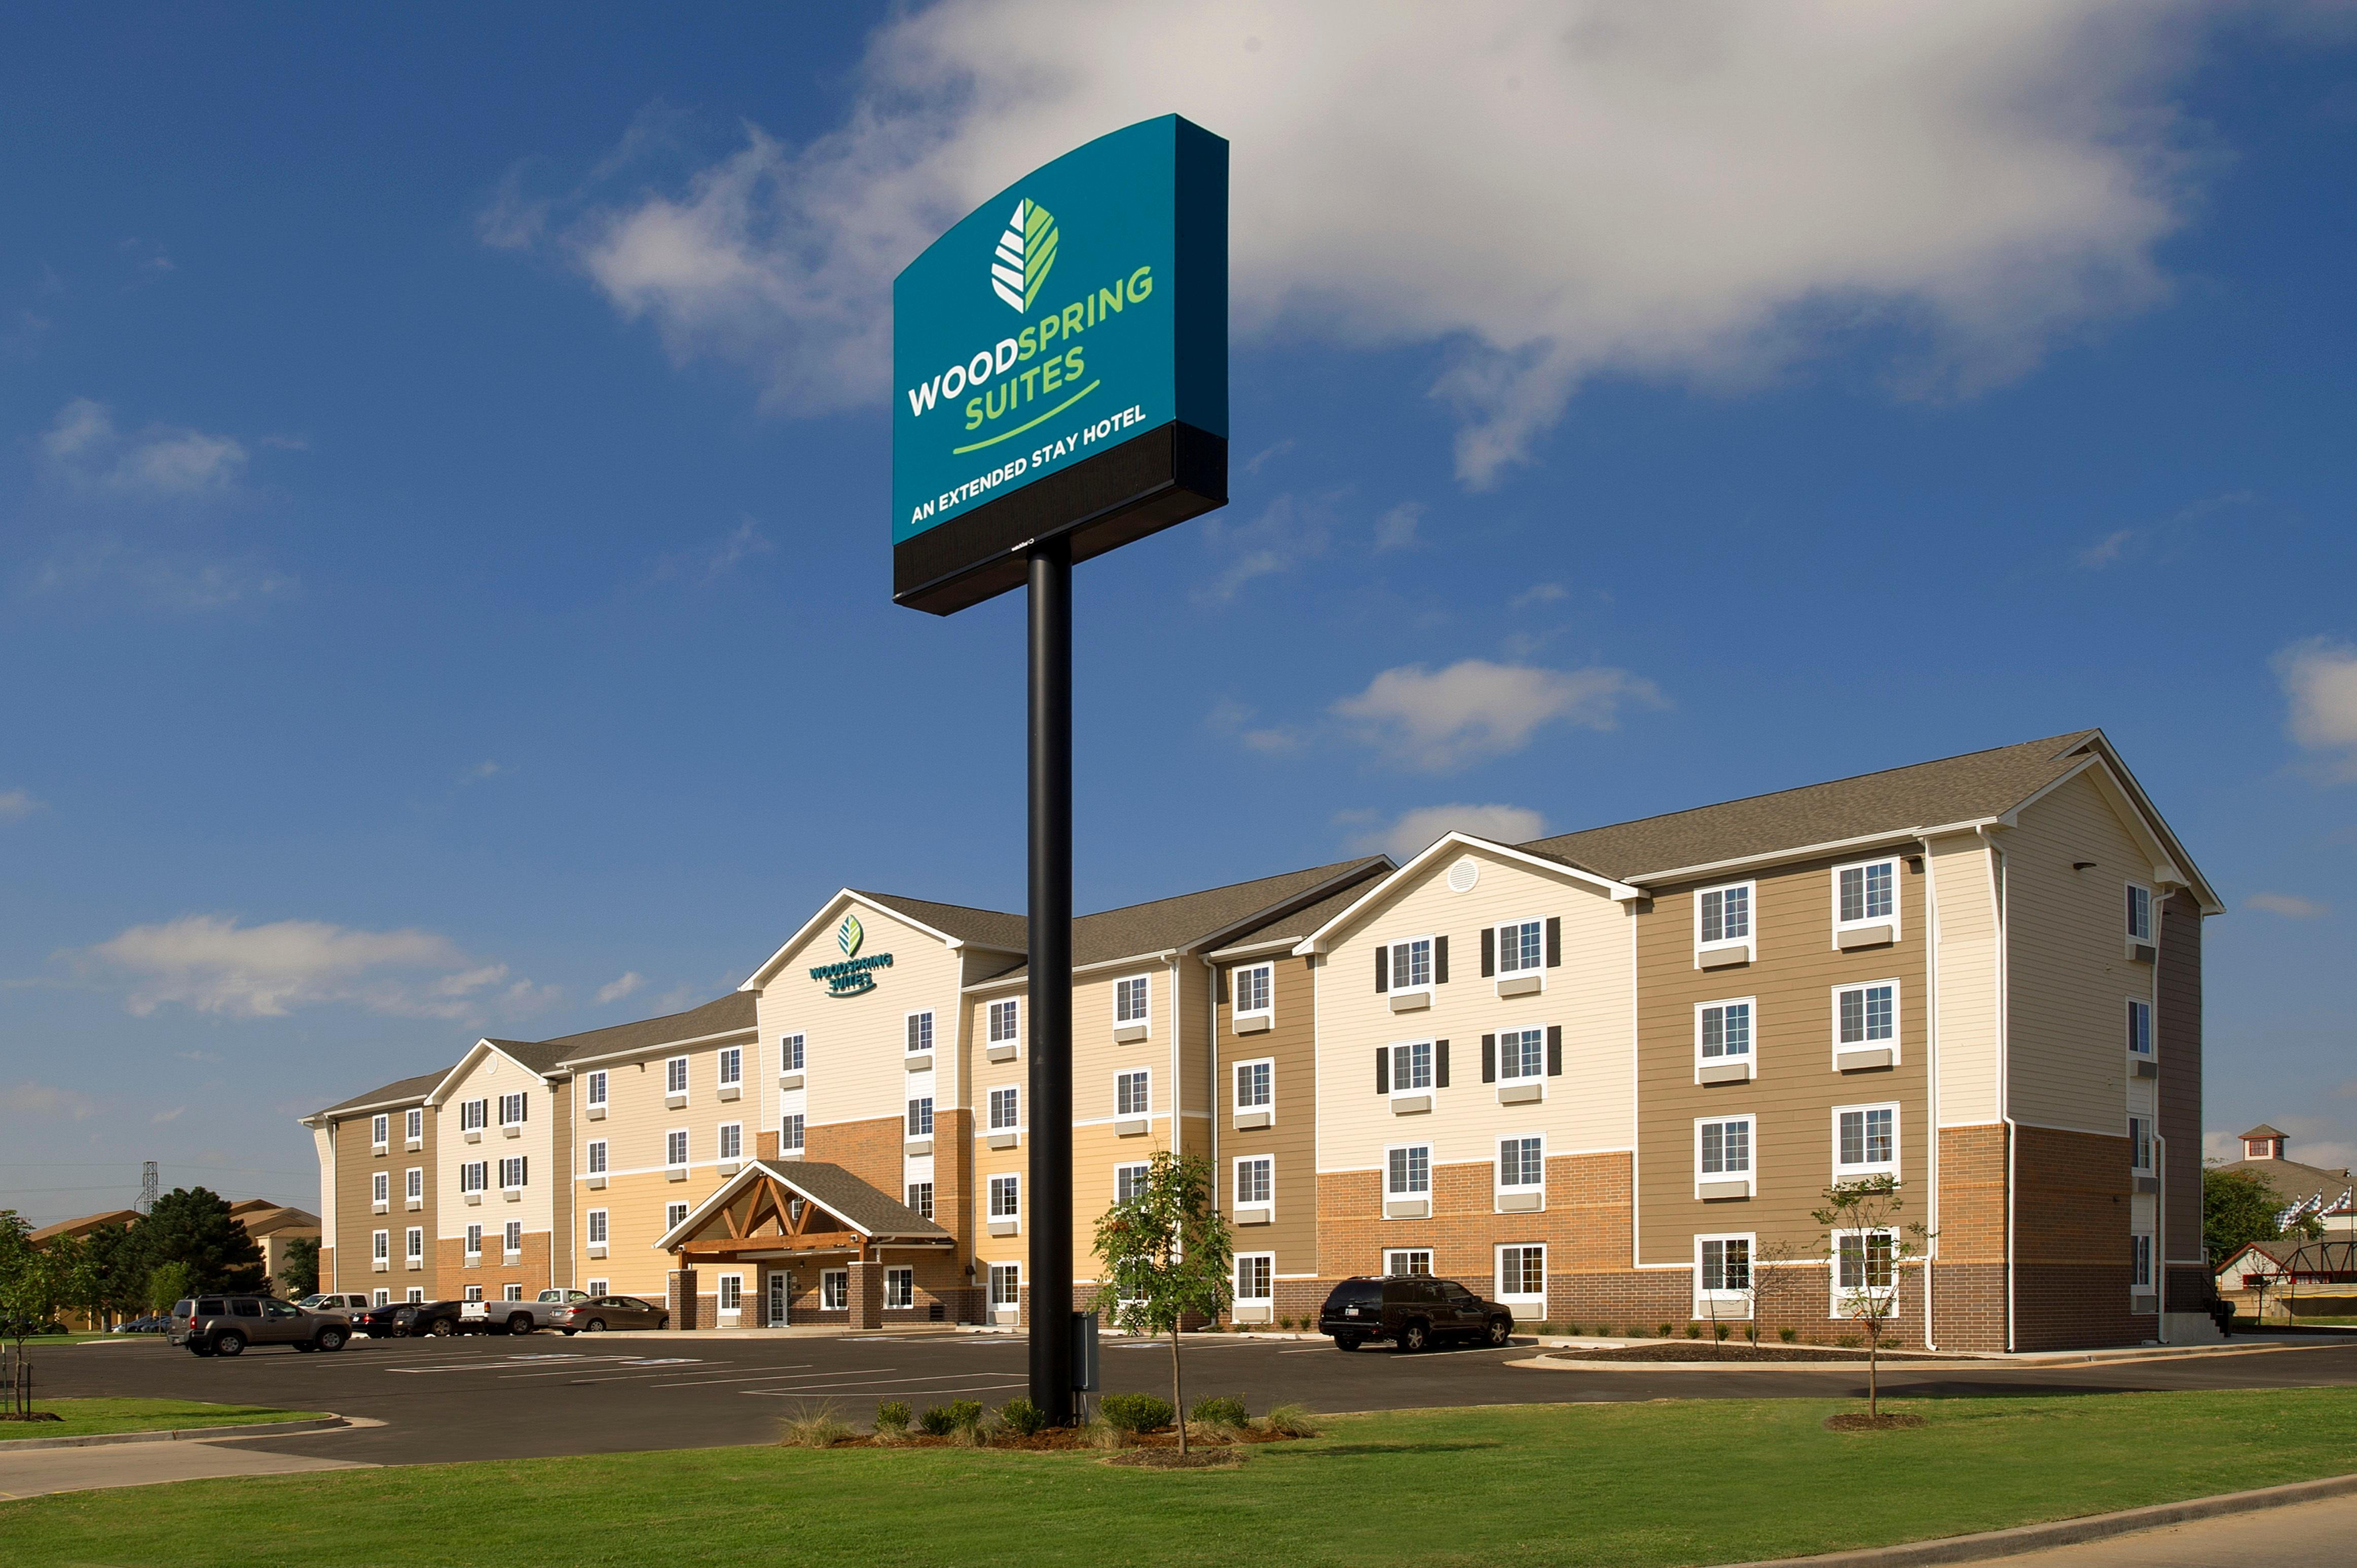 WoodSpring Suites Oklahoma City Airport image 4